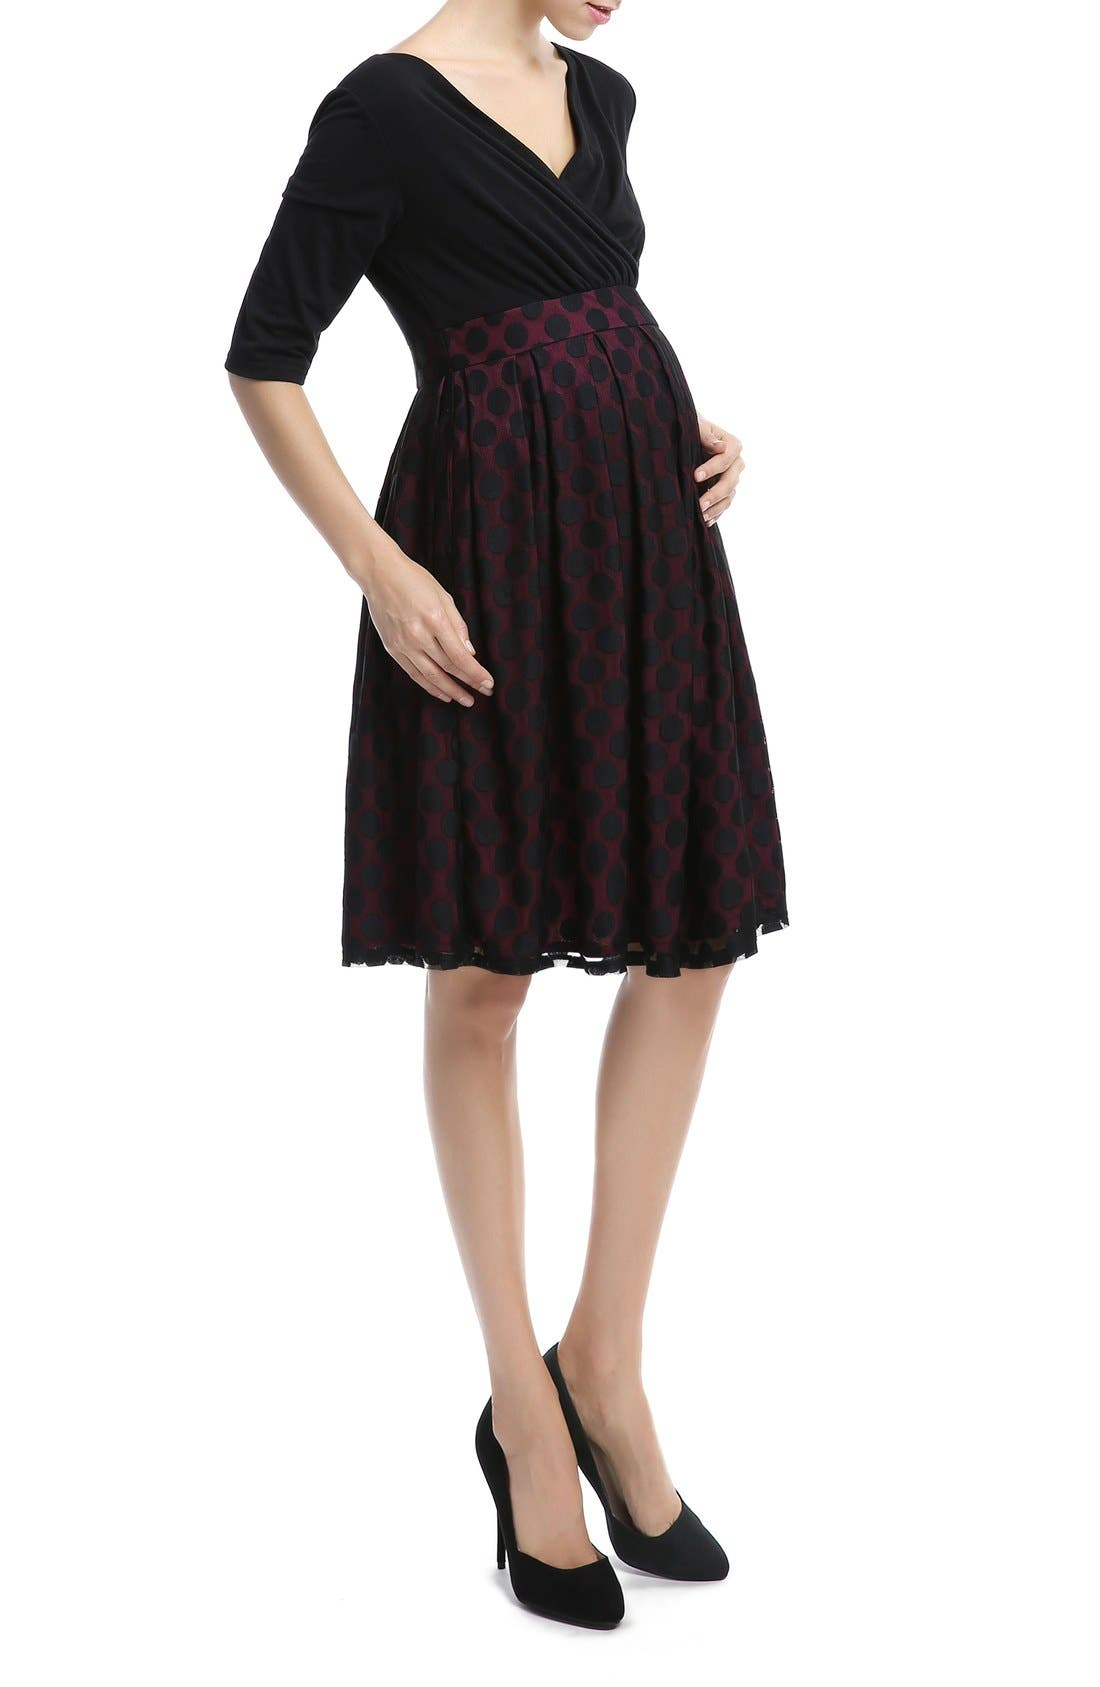 KIMI AND KAI,                             'Liliana' Polka Dot Lace Maternity Dress,                             Alternate thumbnail 3, color,                             003